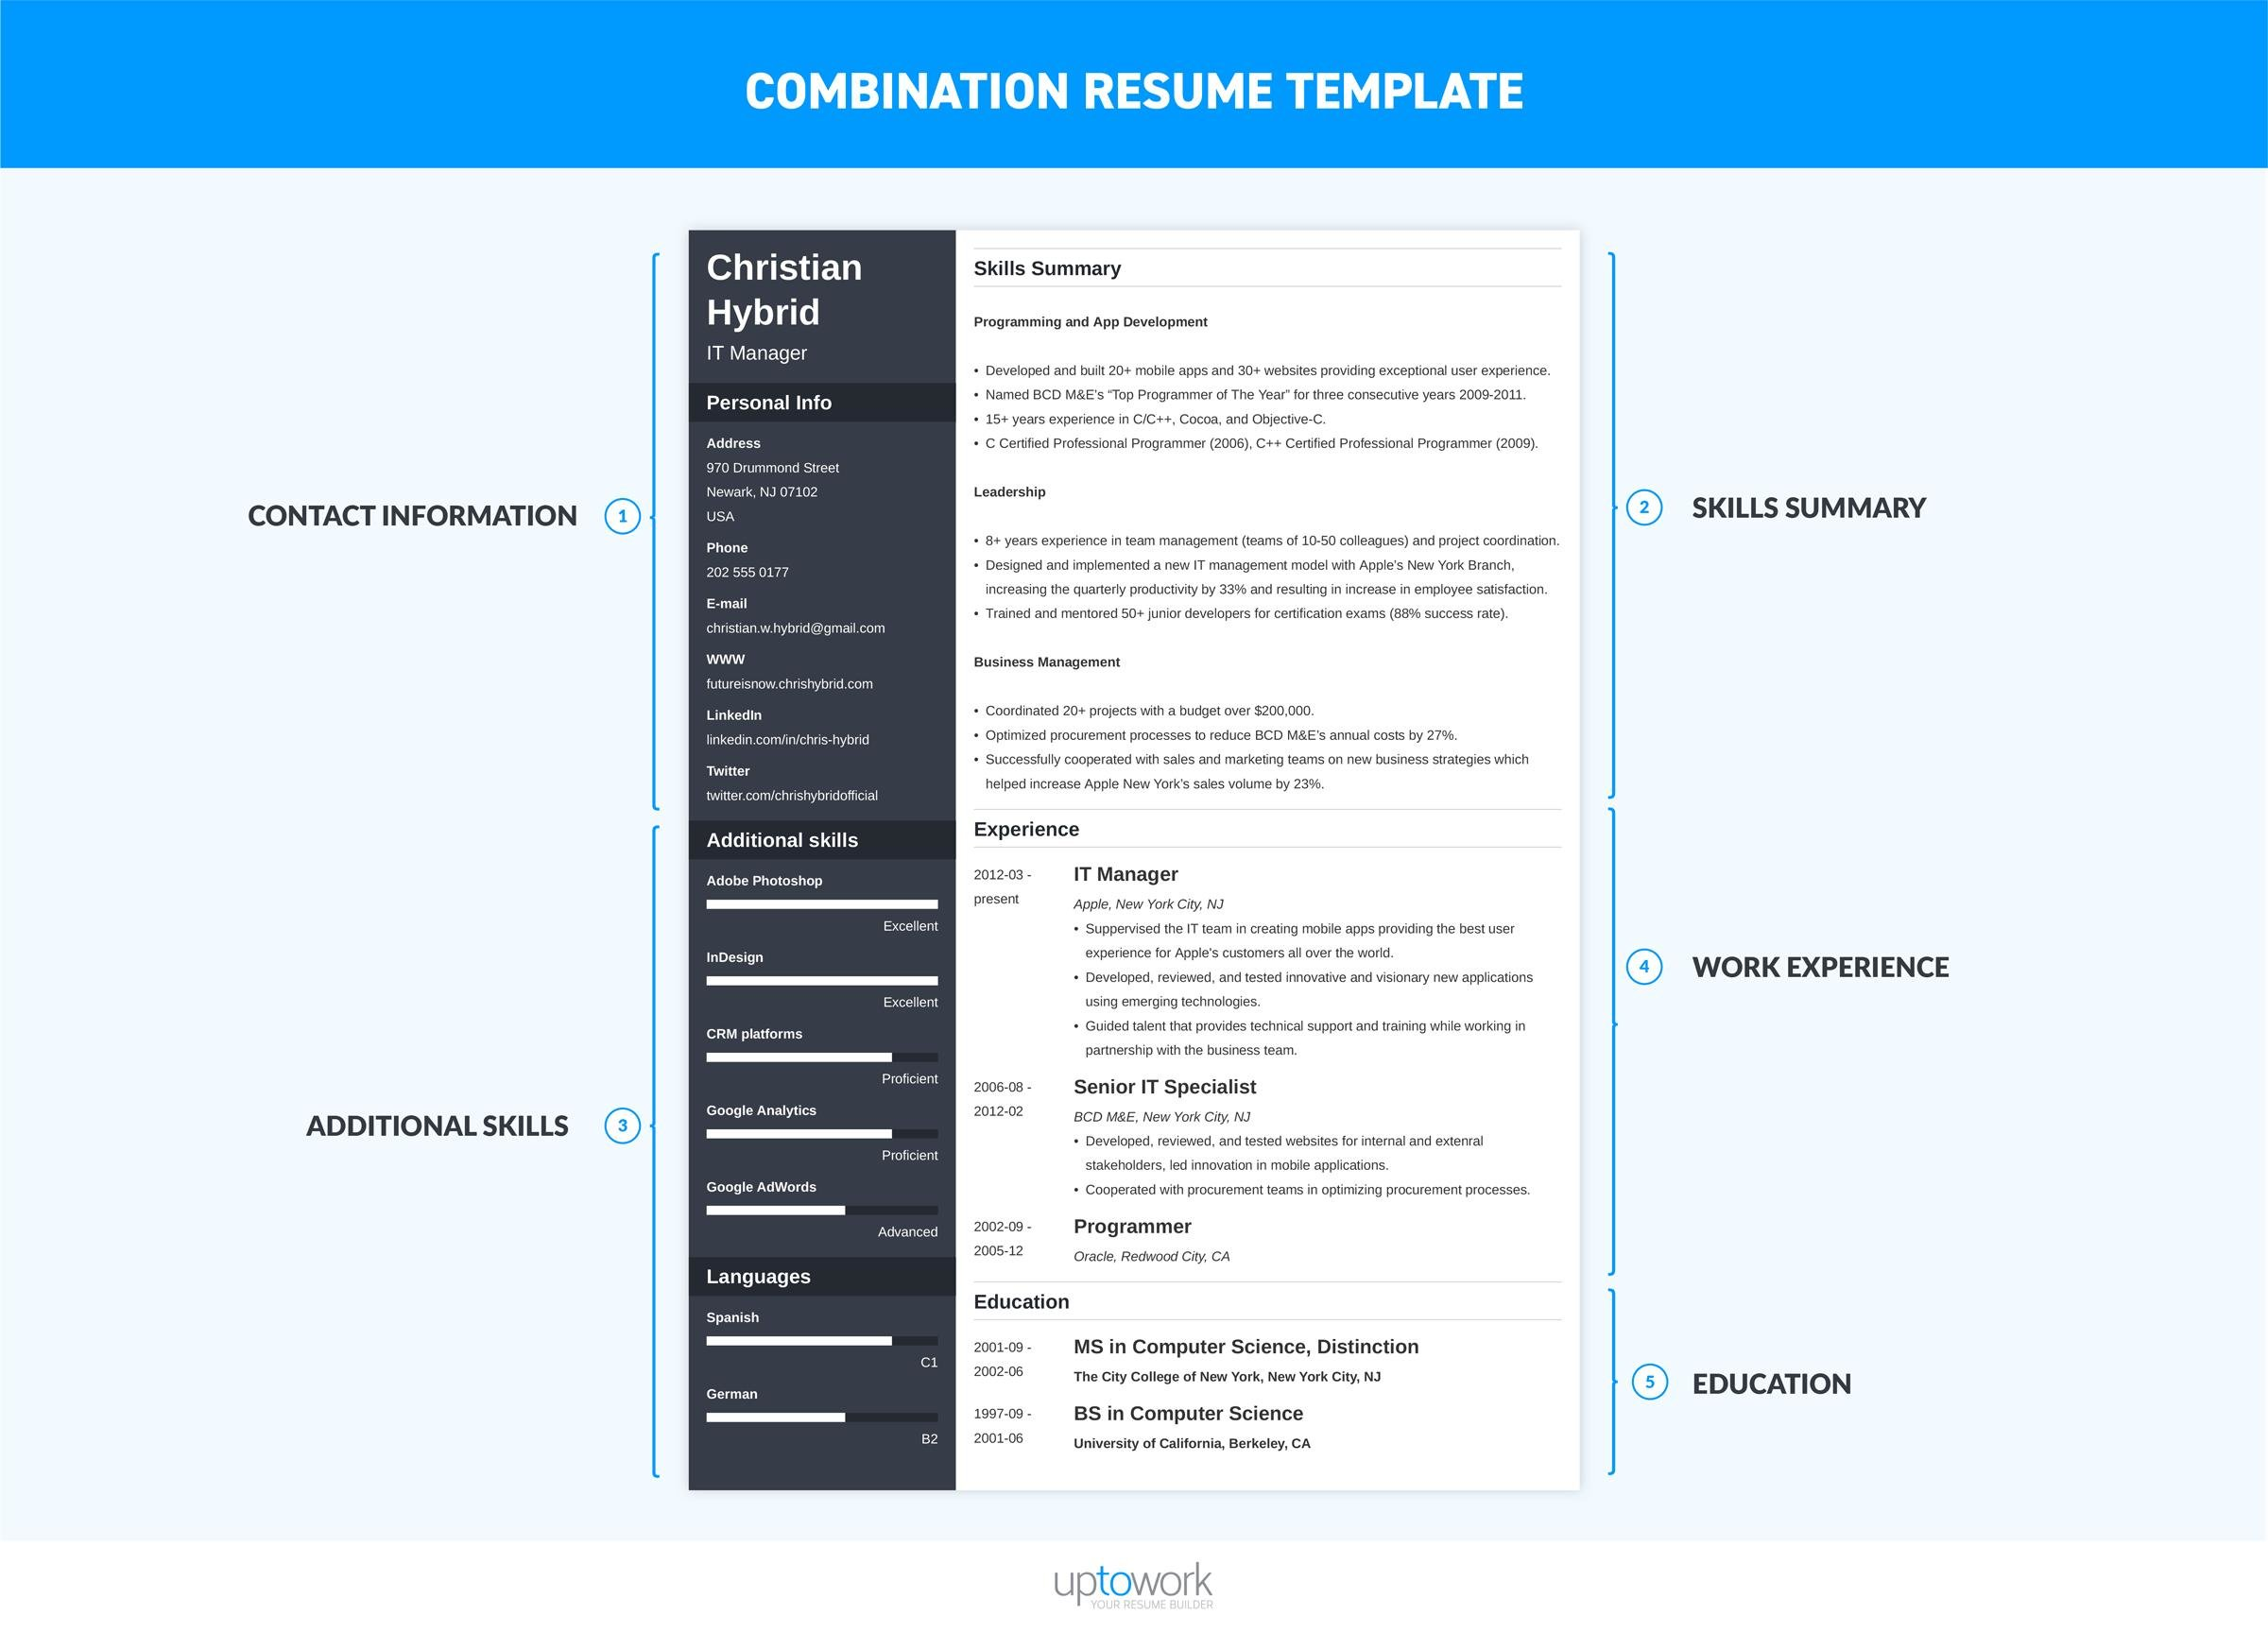 Combination Resume Template 5 Hybrid Examples